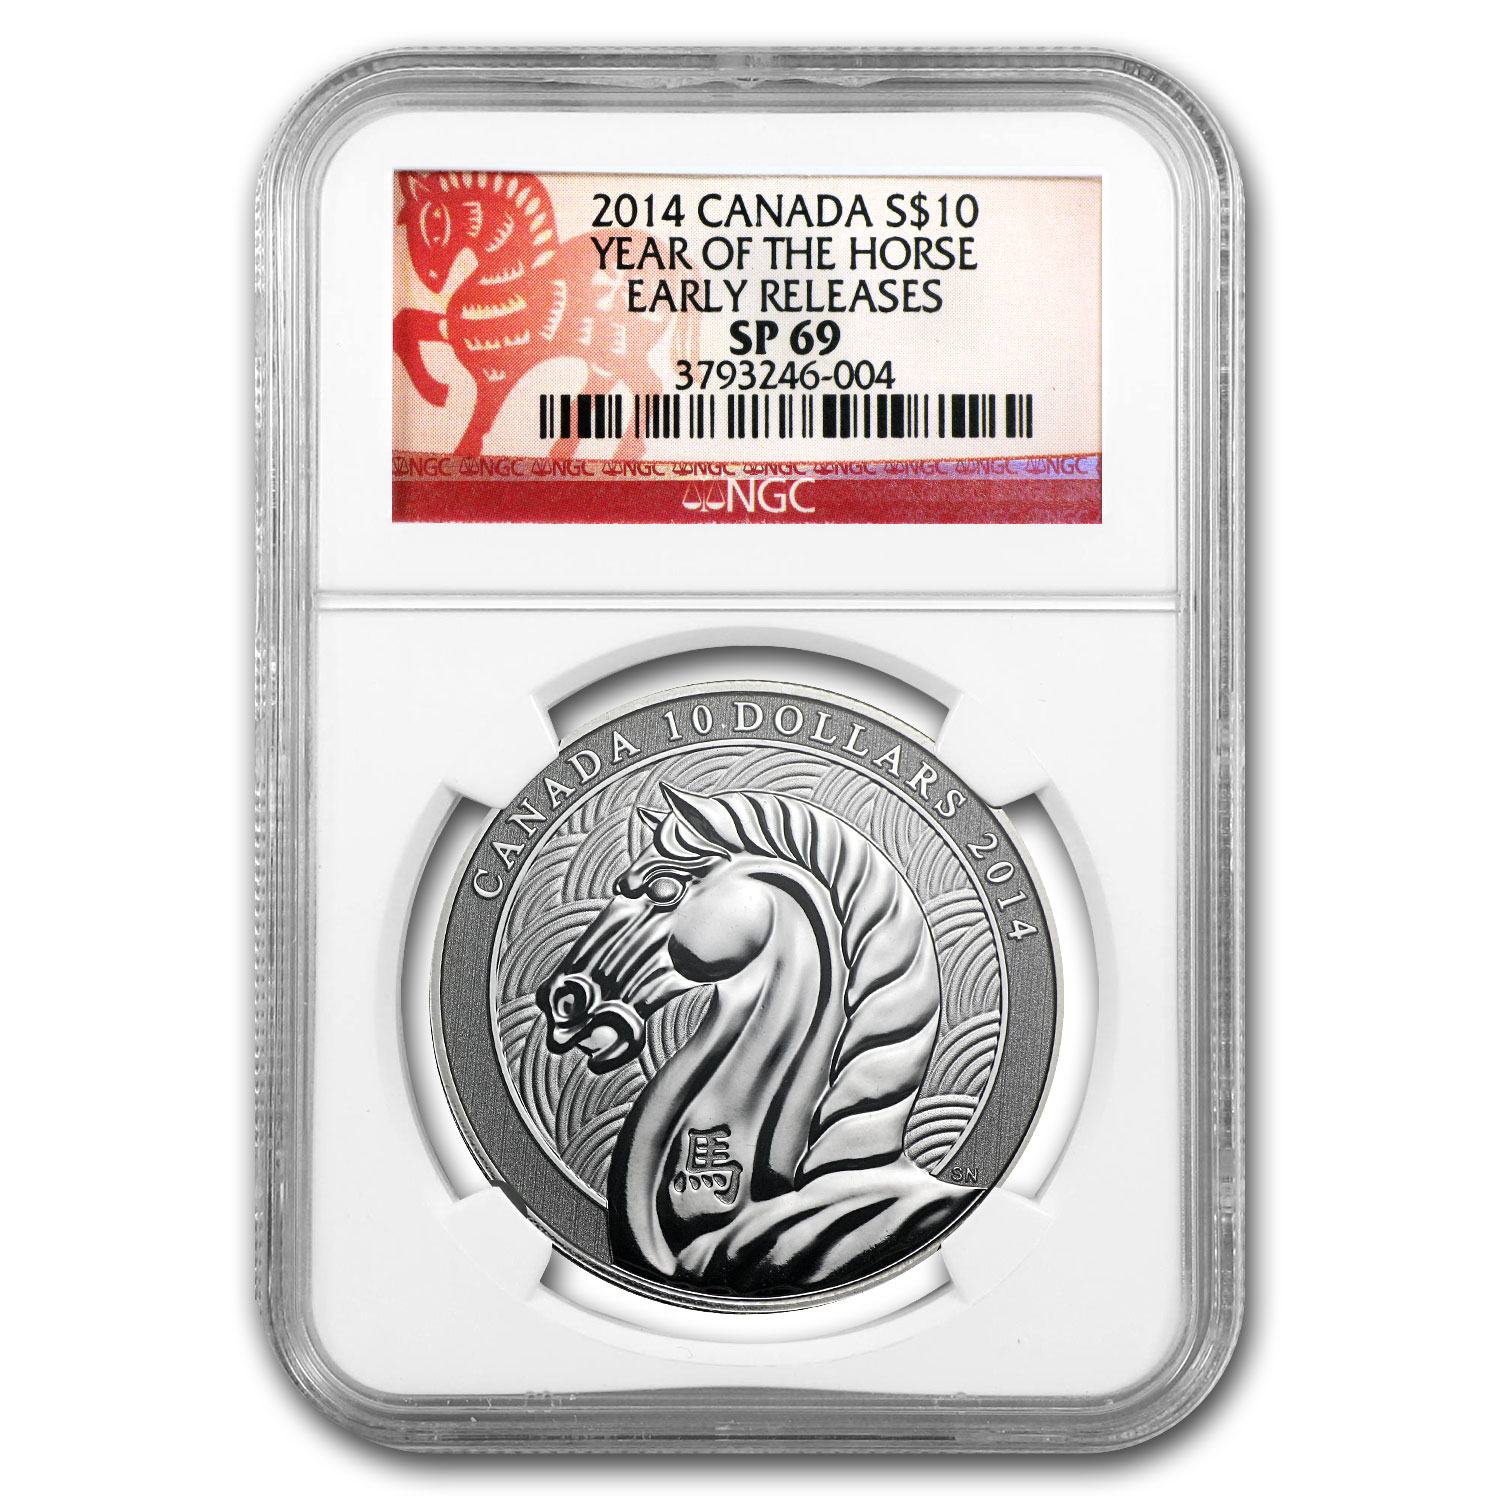 2014 1/2 oz Silver Canadian $10 -Year of the Horse SP-69 NGC - ER